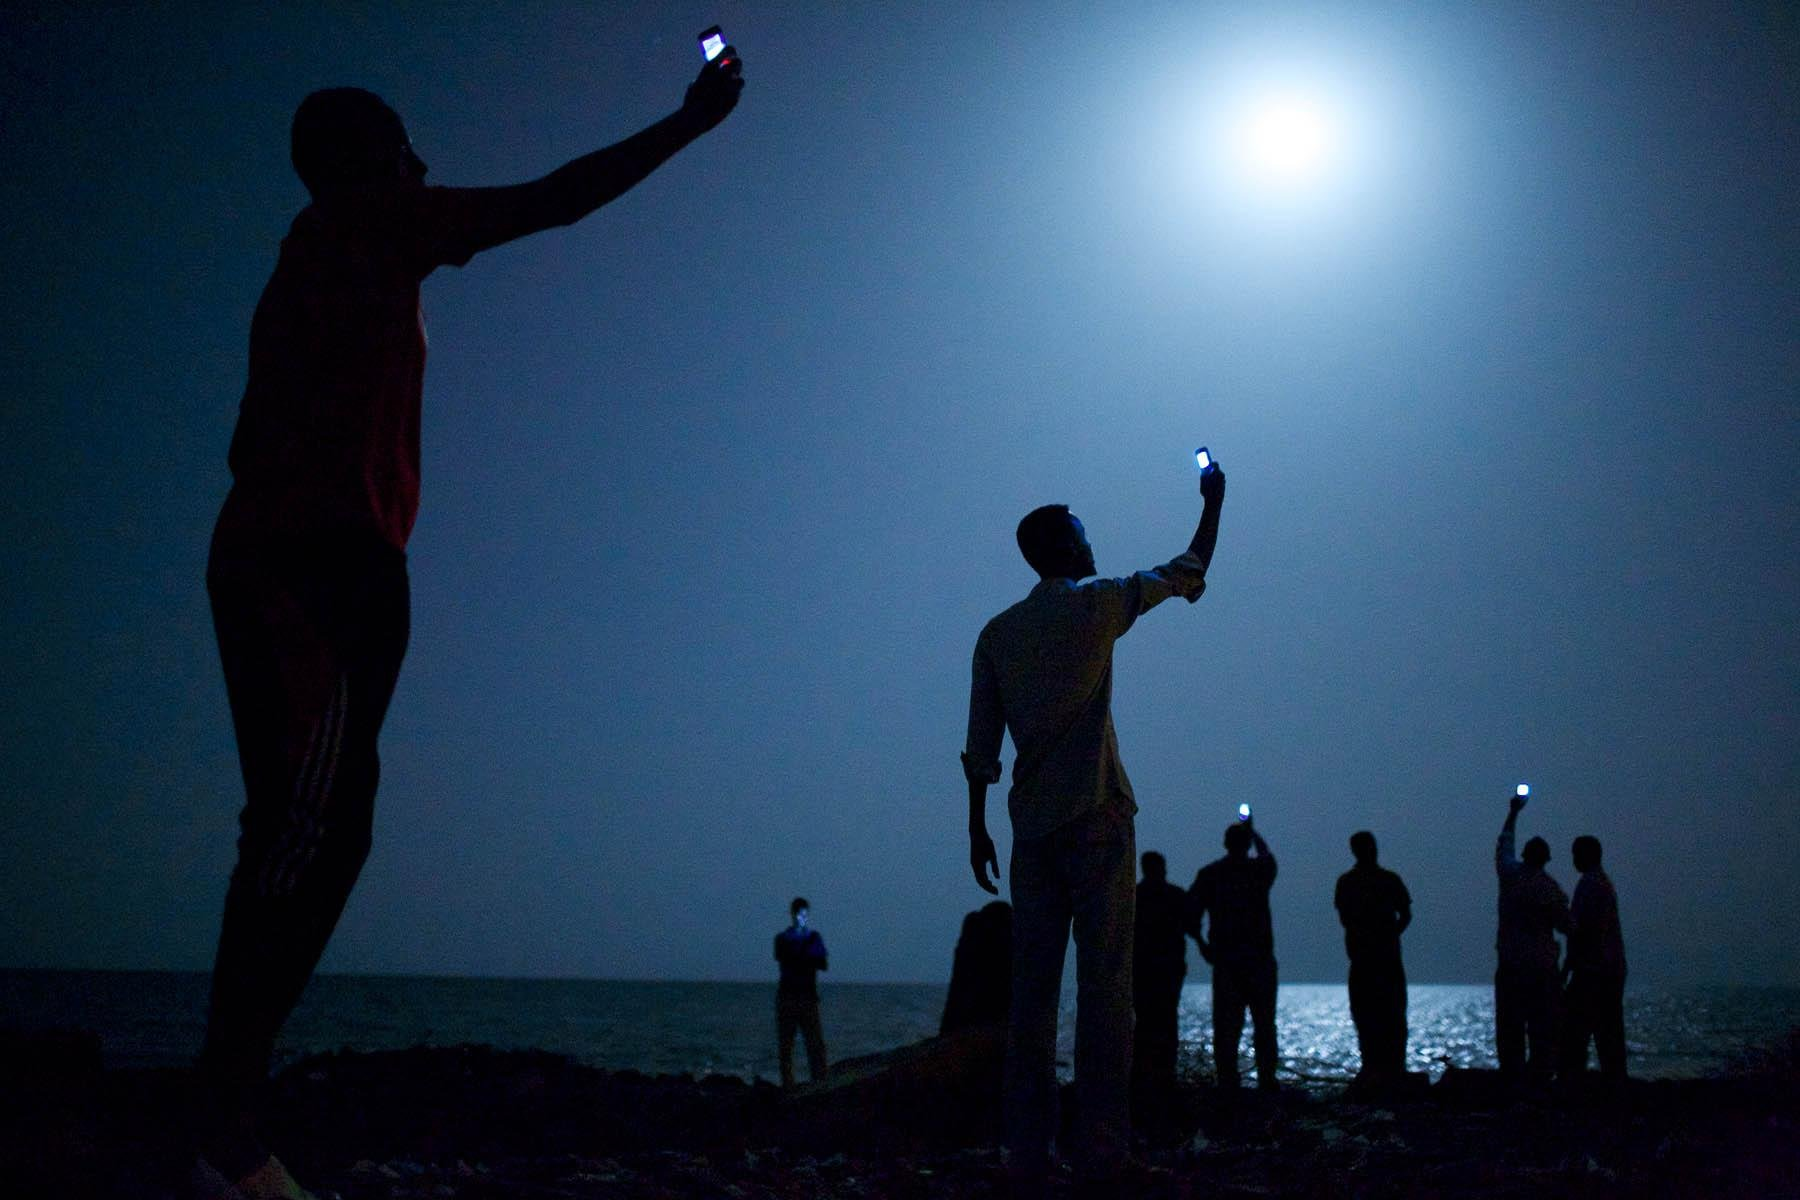 African migrants on the shore of Djibouti City at night raise their phones in an attempt to catch an inexpensive signal John Stanmeyer from the VII photo agency